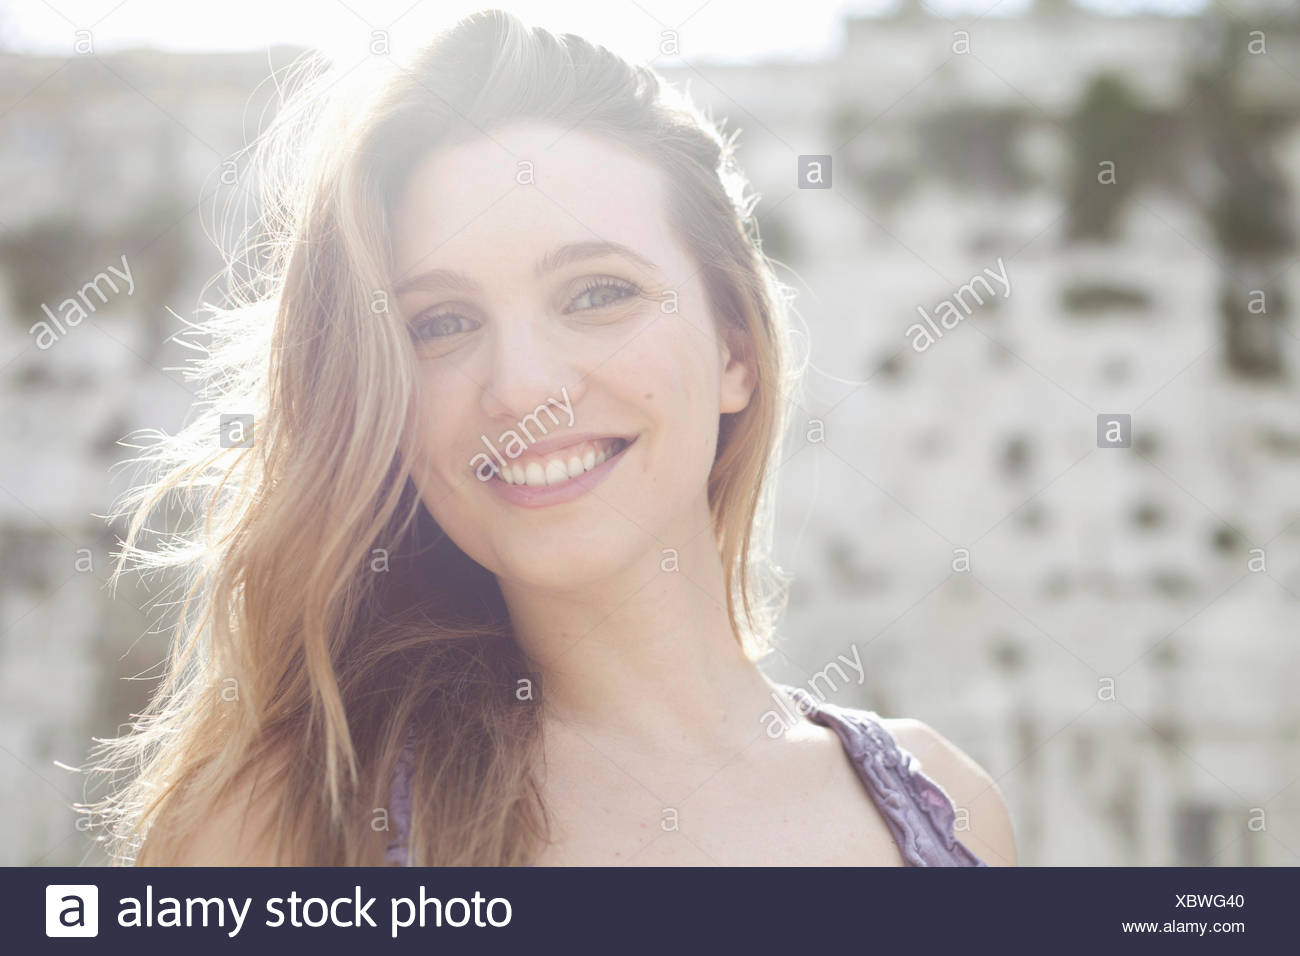 Portrait of a happy young woman - Stock Image